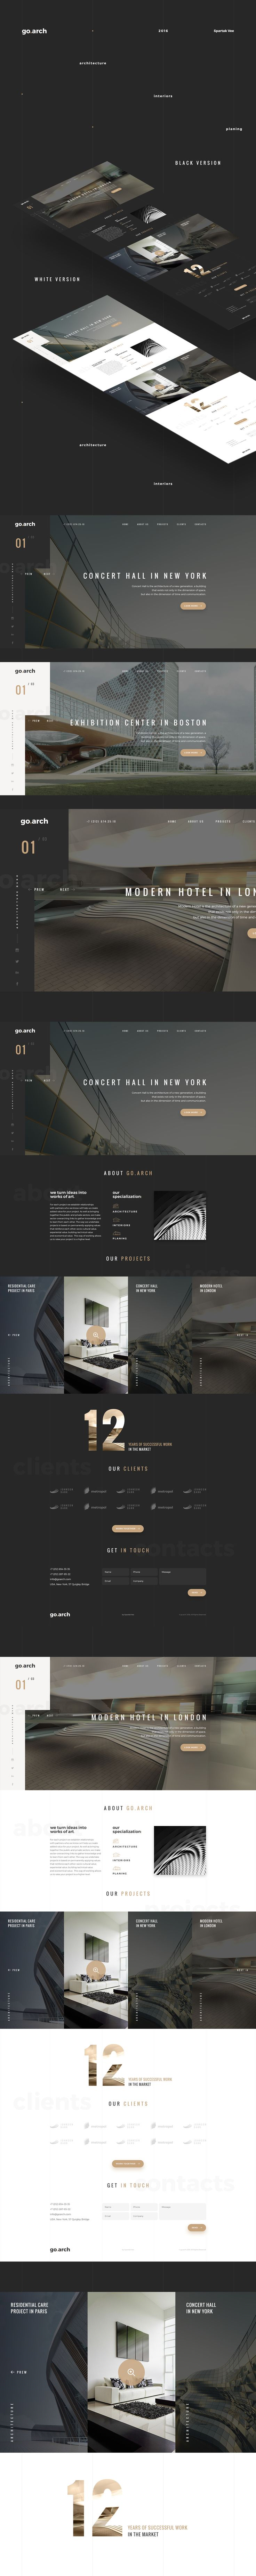 Architecture buro website.